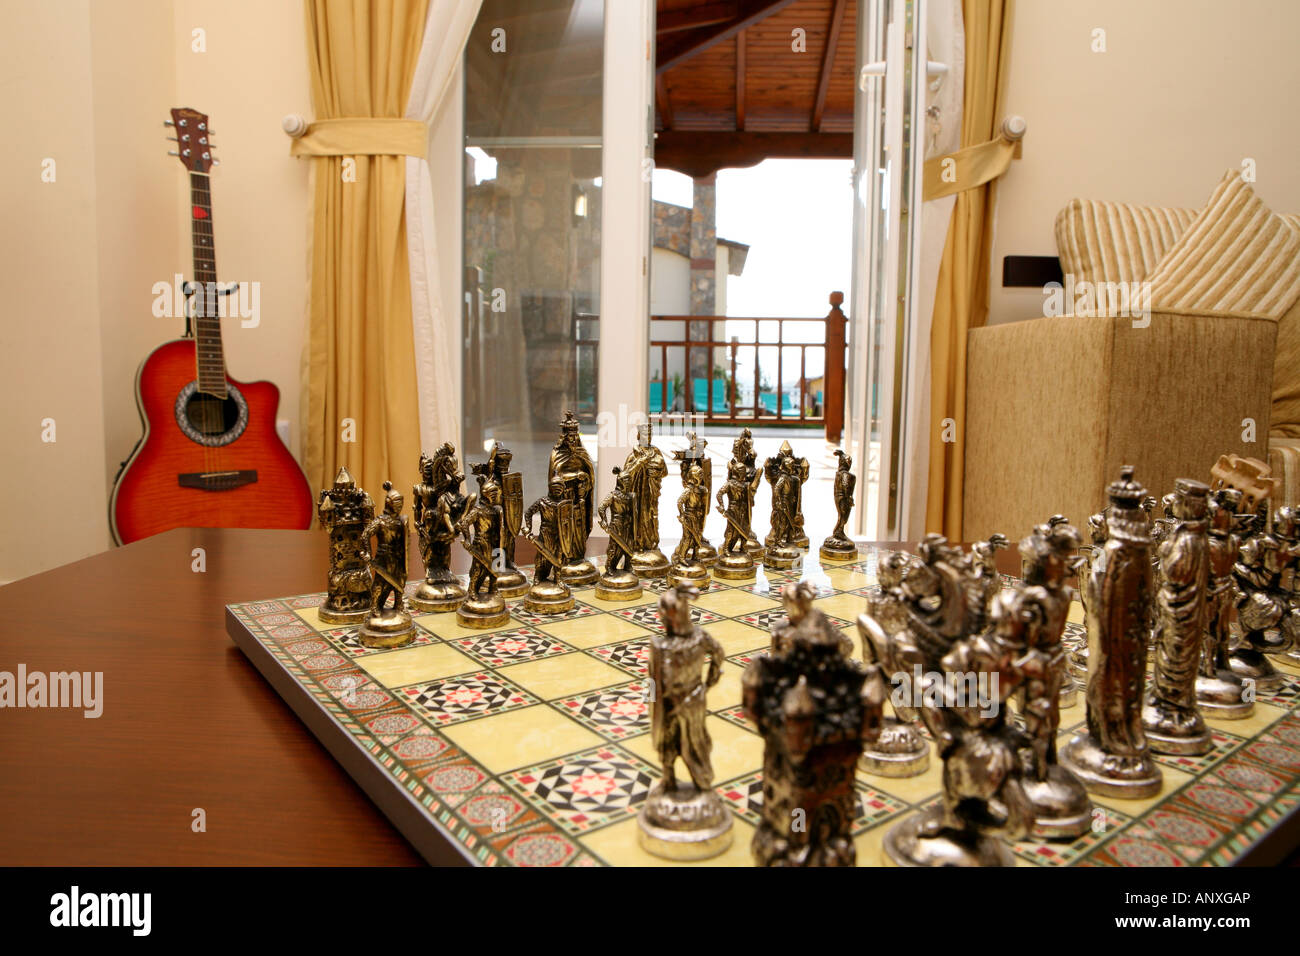 Exotic Chess Set With Guitar And View Through Window To Sun Patio In  Background